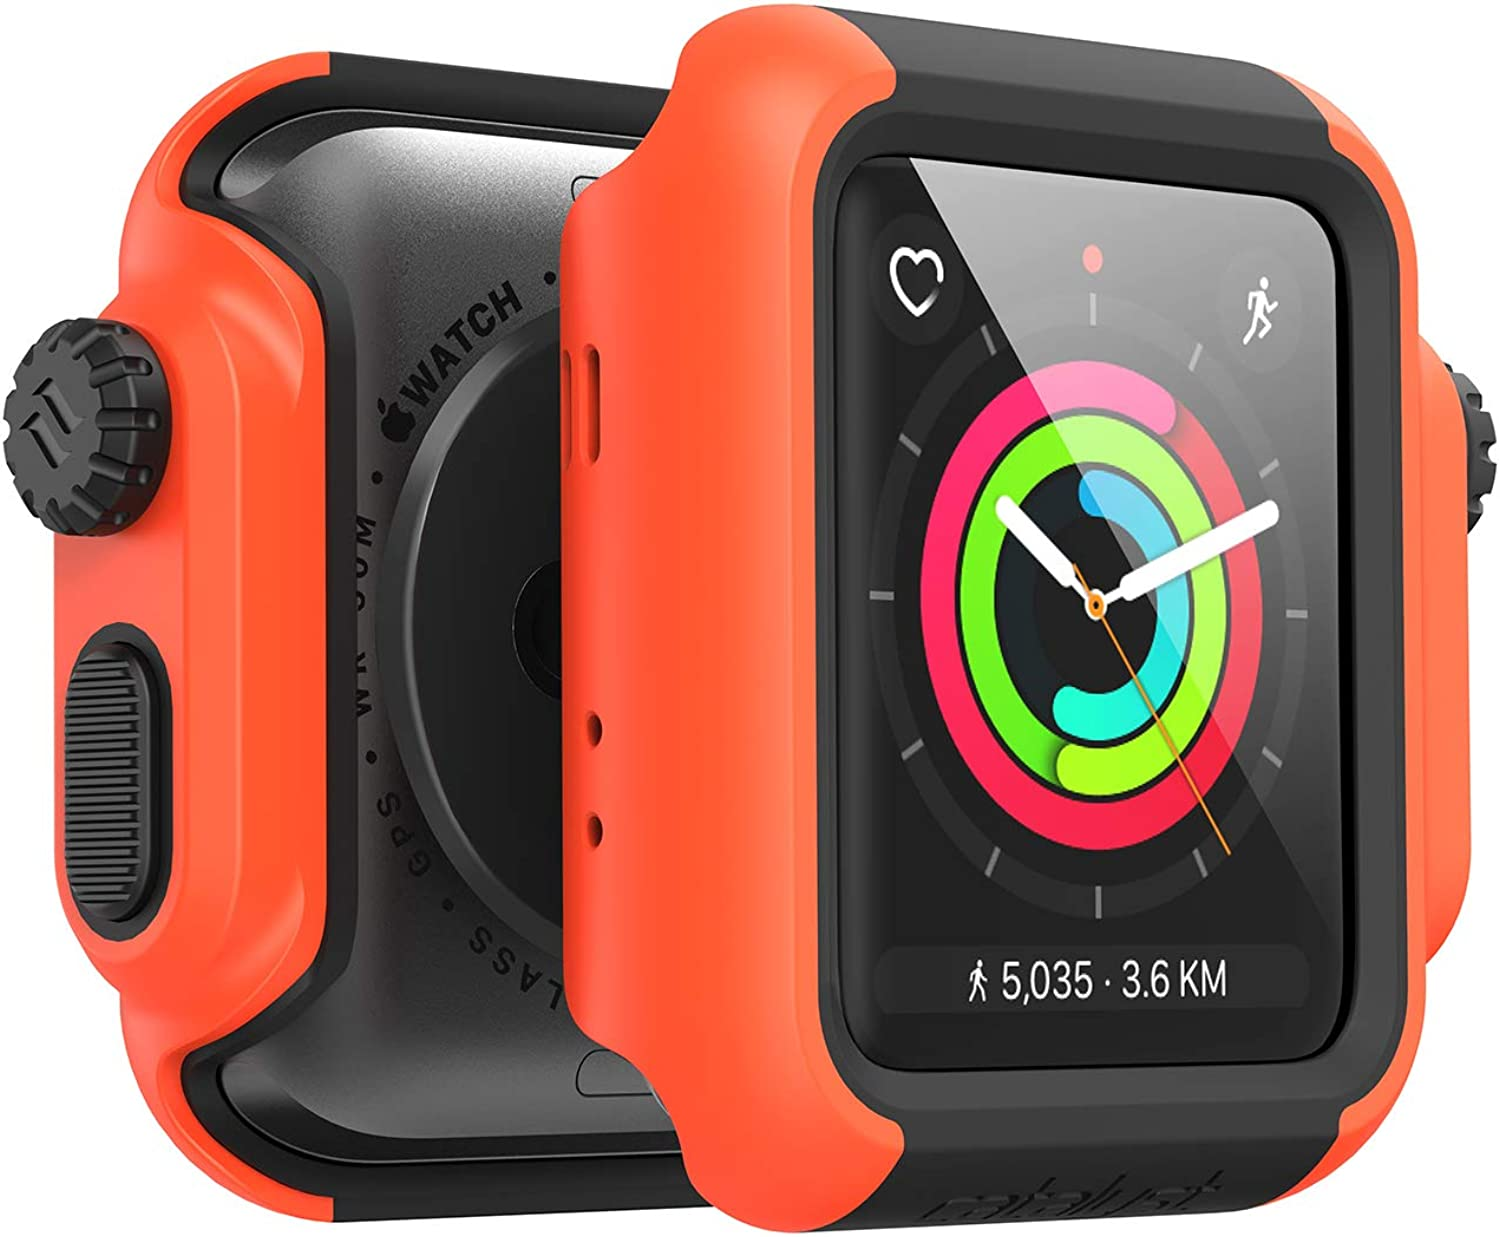 Designed for Apple Watch Impact Case 42mm Series 3 & 2 Rugged Protective Case by Catalyst, Drop Proof Shock Proof Impact Resistant Designed for Apple Watch Case, Sunset